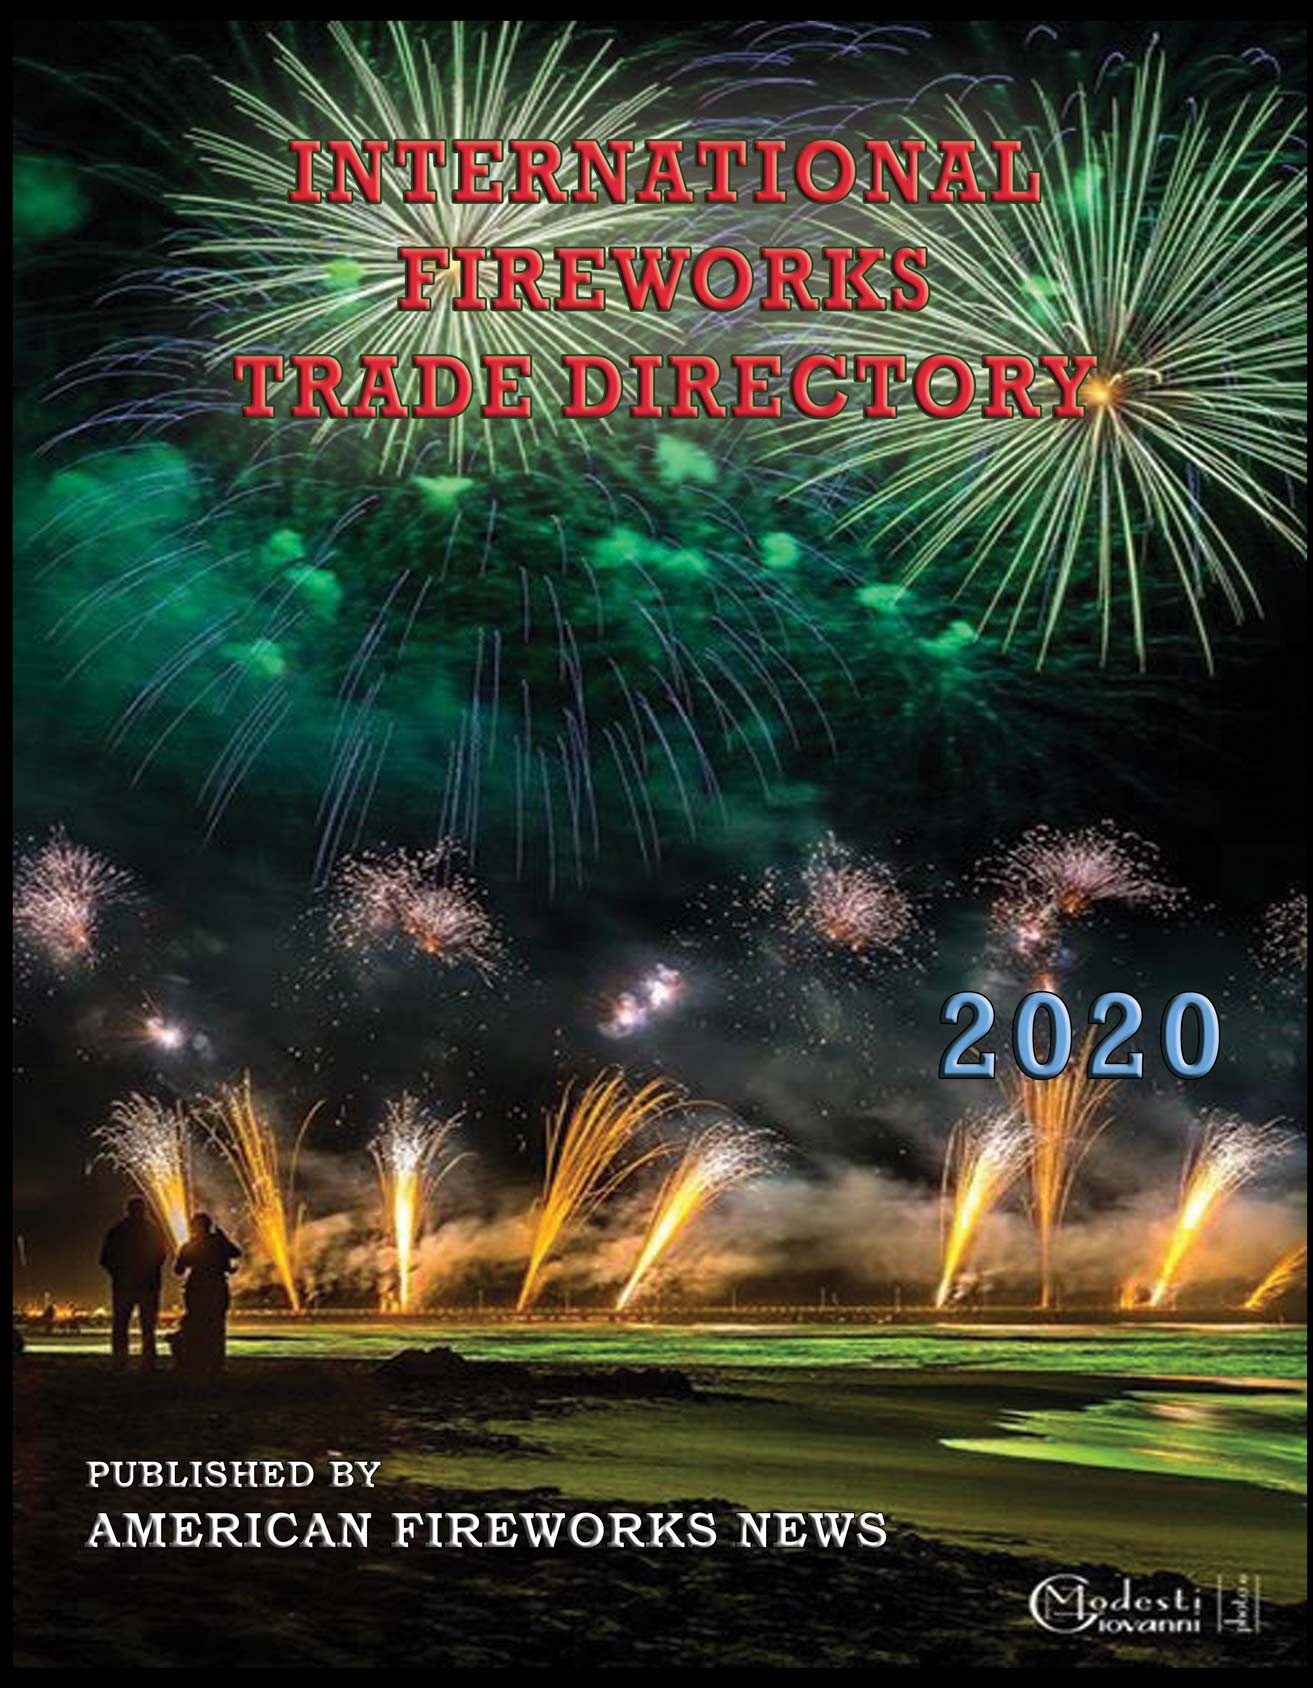 M79 - 2020 International Fireworks Trade Directory